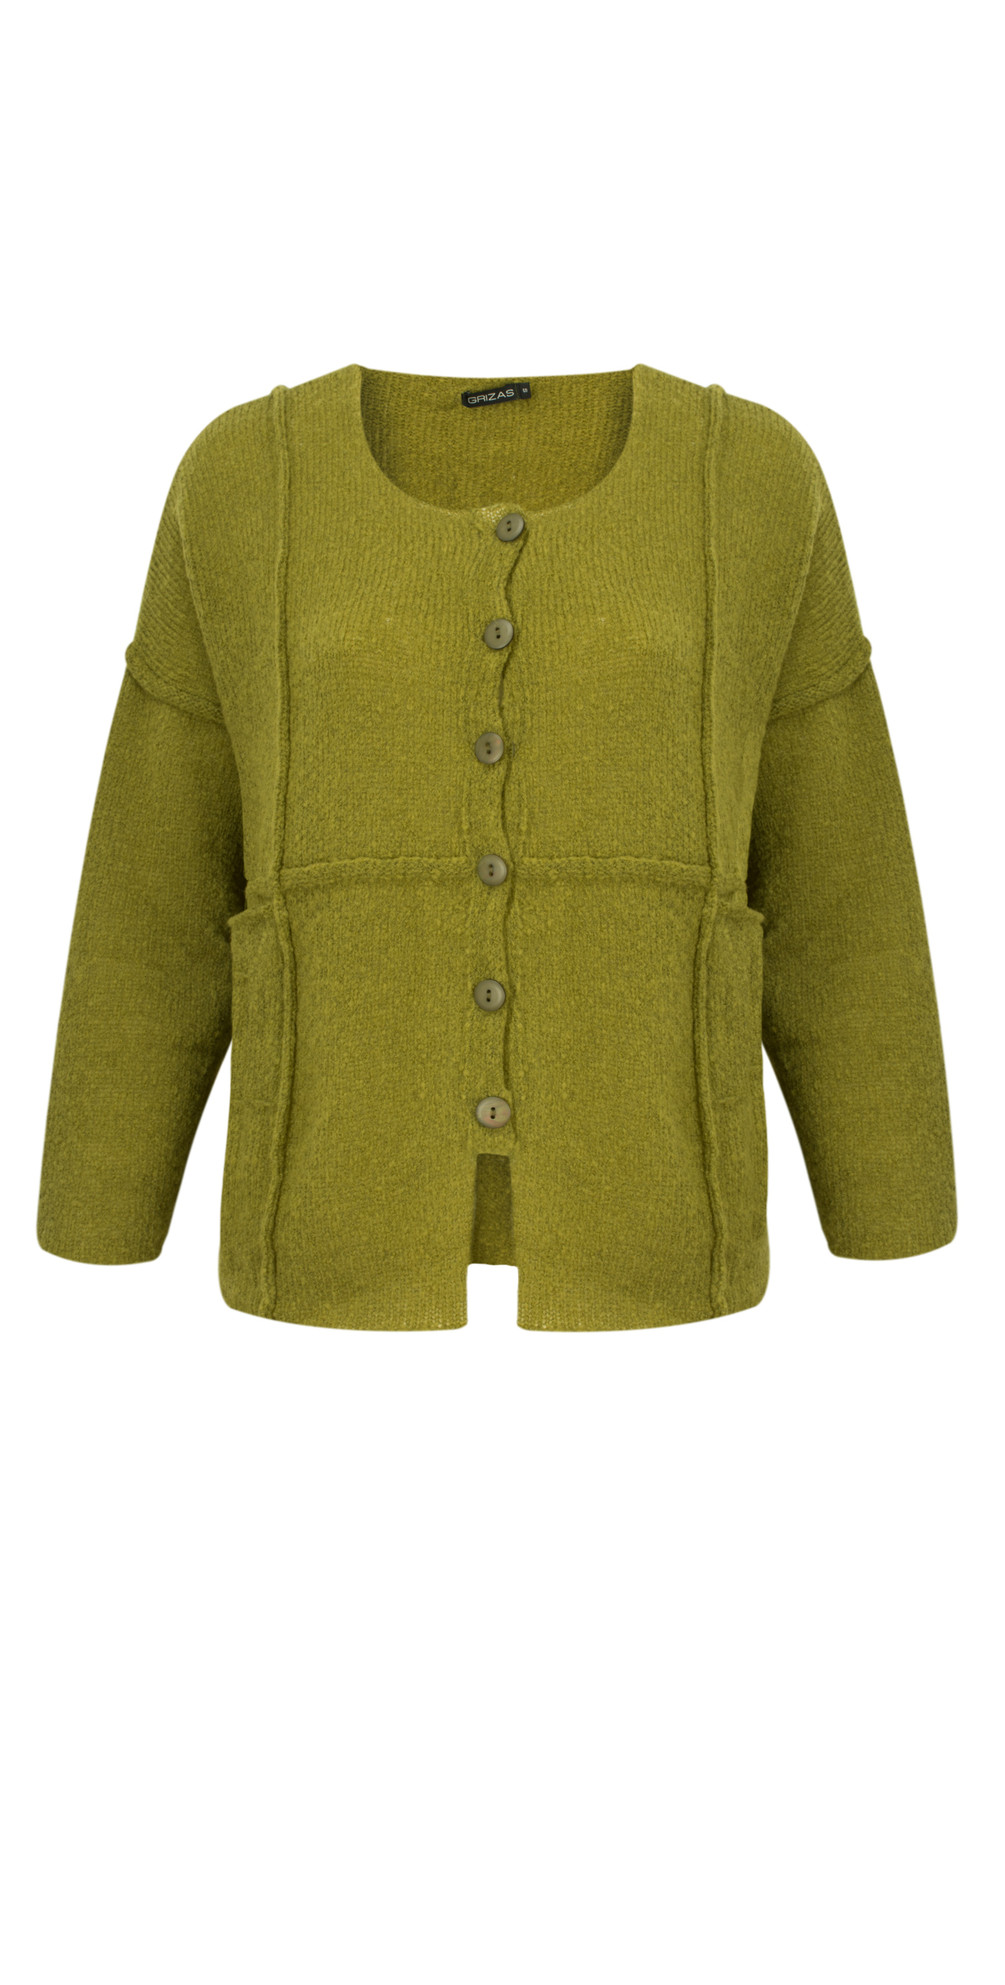 Grizas Hand Knitted Soft Wool Cardigan in Moss